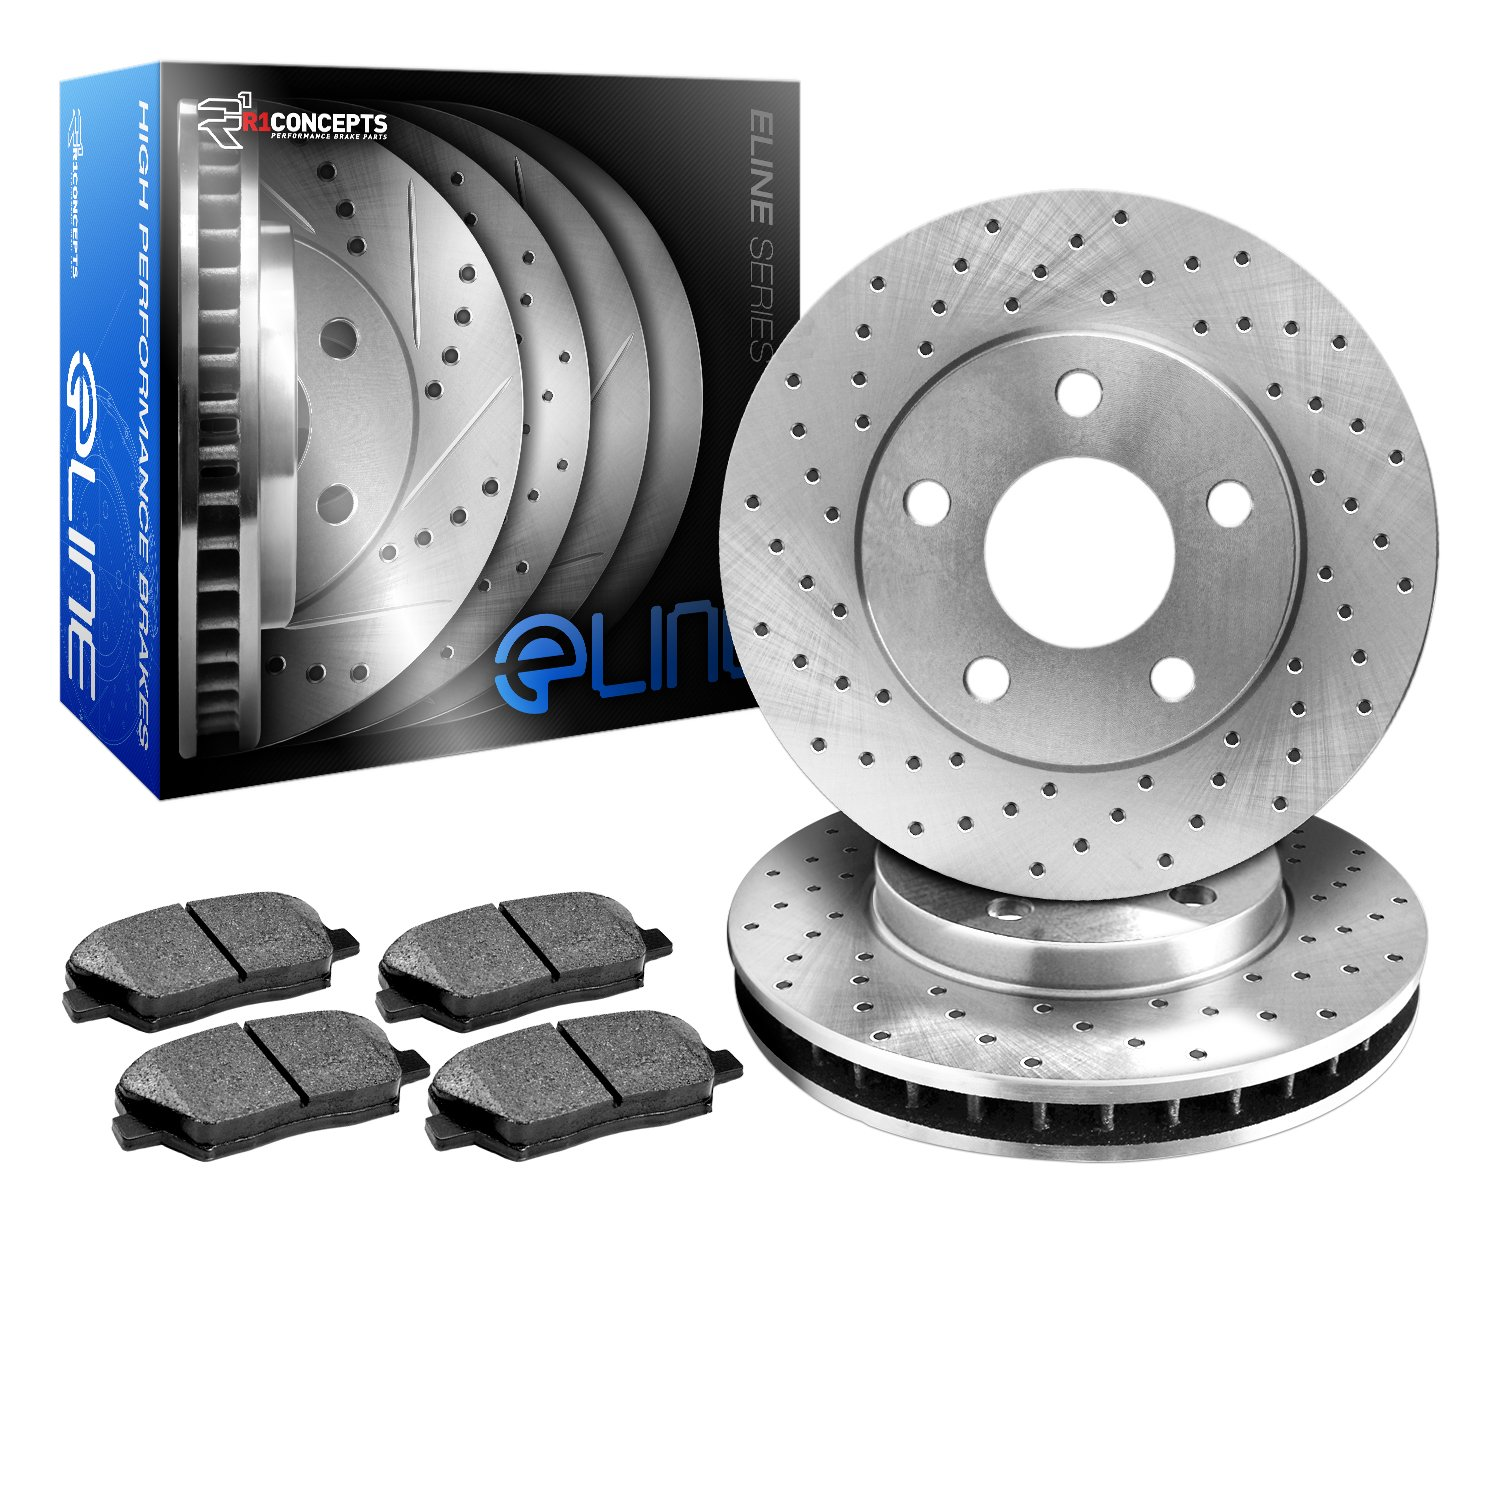 R1 Concepts KEX11515 Eline Series Cross-Drilled Rotors And Ceramic Pads Kit - Front